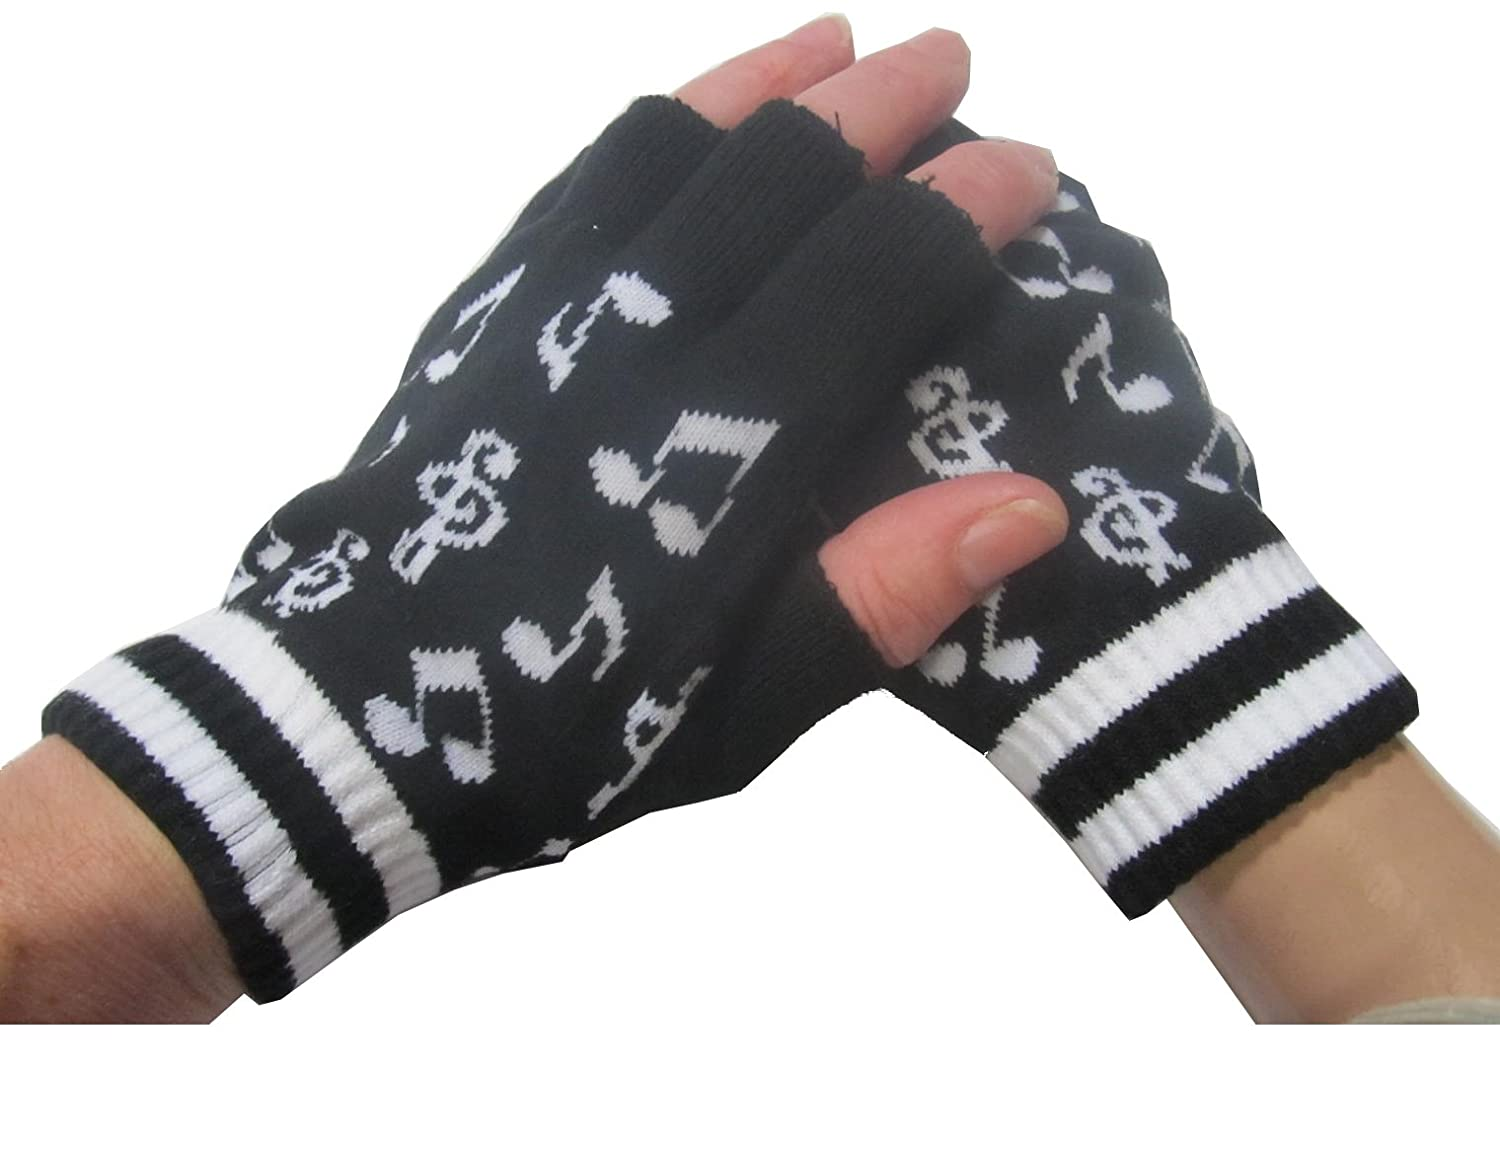 Fingerless gloves amazon - Amazon Com Music Notes Black And White Knitted Fingerless Gloves Clothing